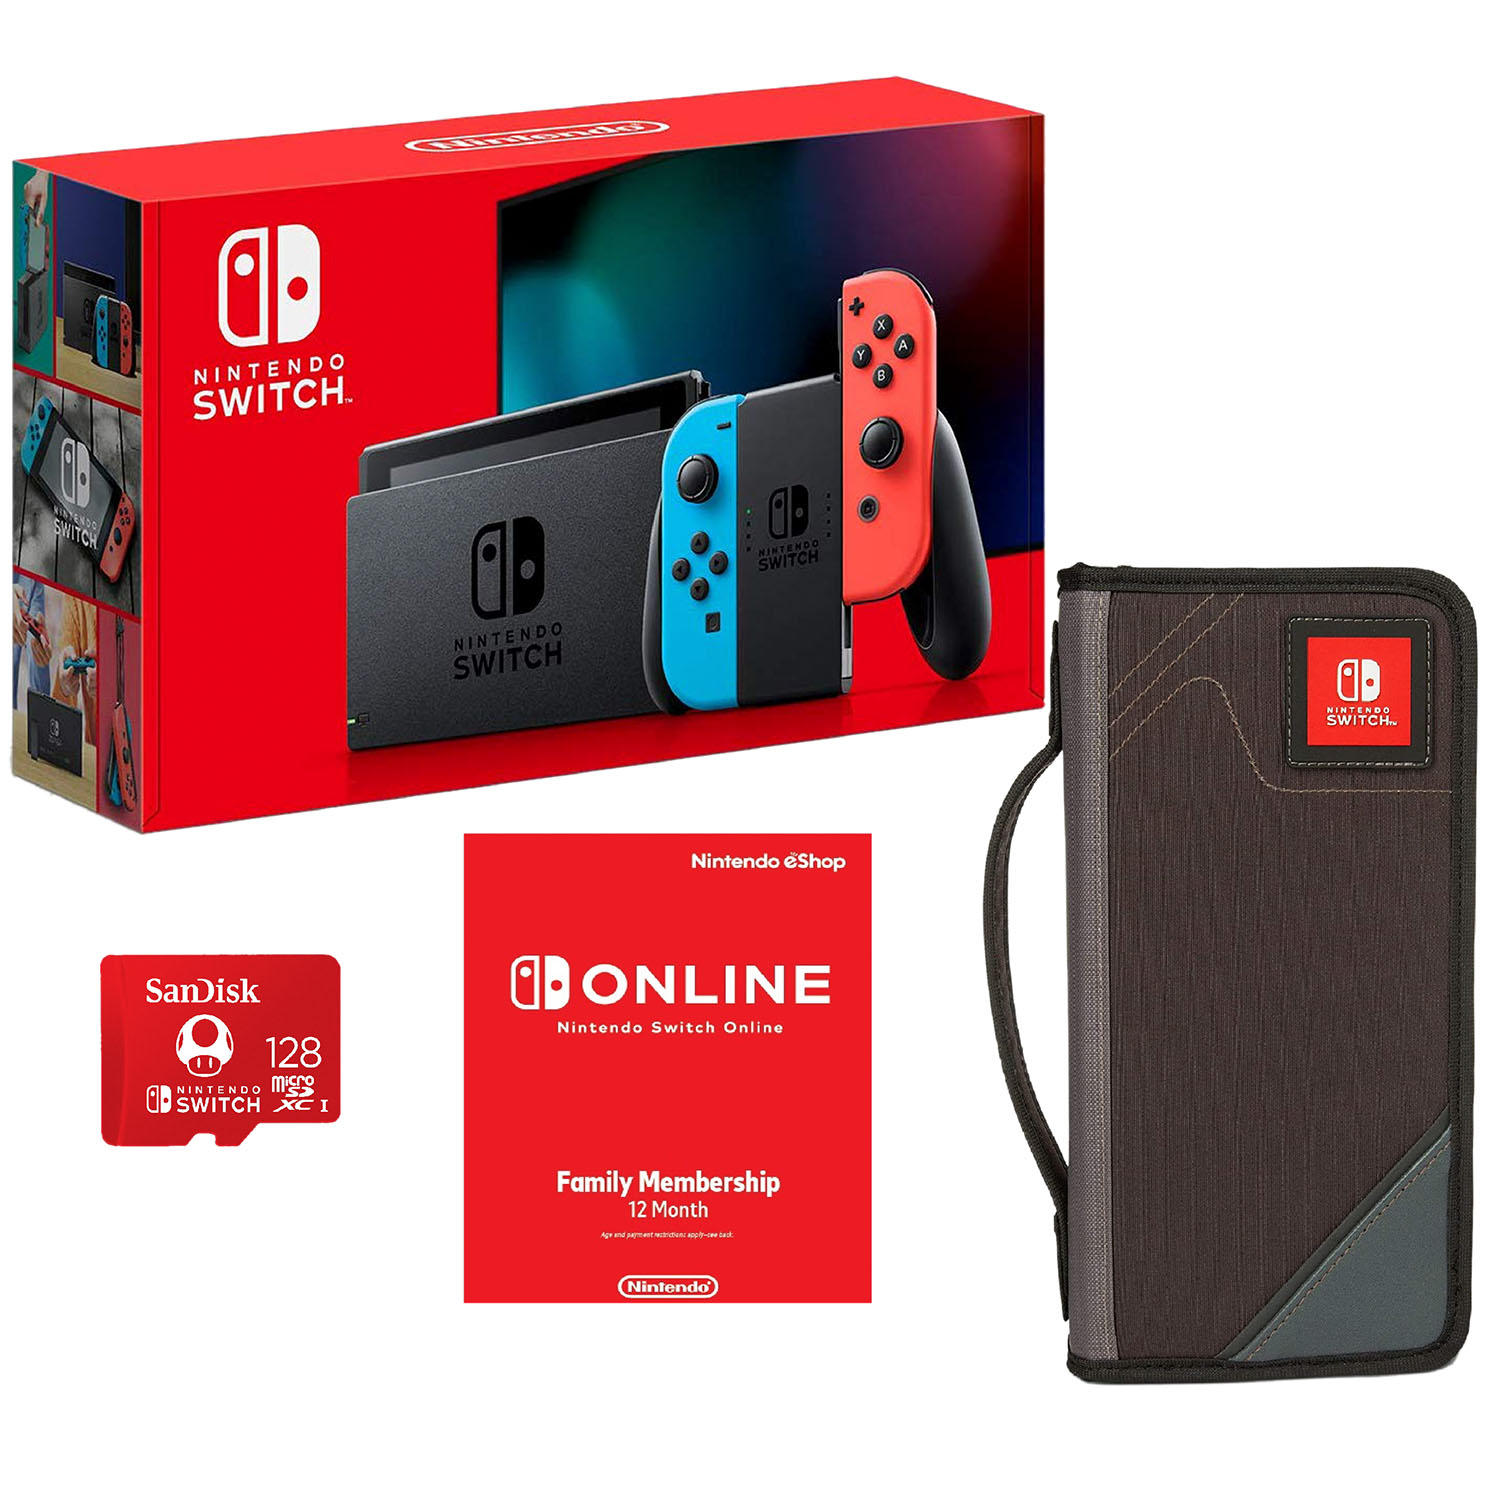 Nintendo Switch All-in-One Bundle with Carrying Case, 12-Month Gaming Membership, 128GB Memory Card